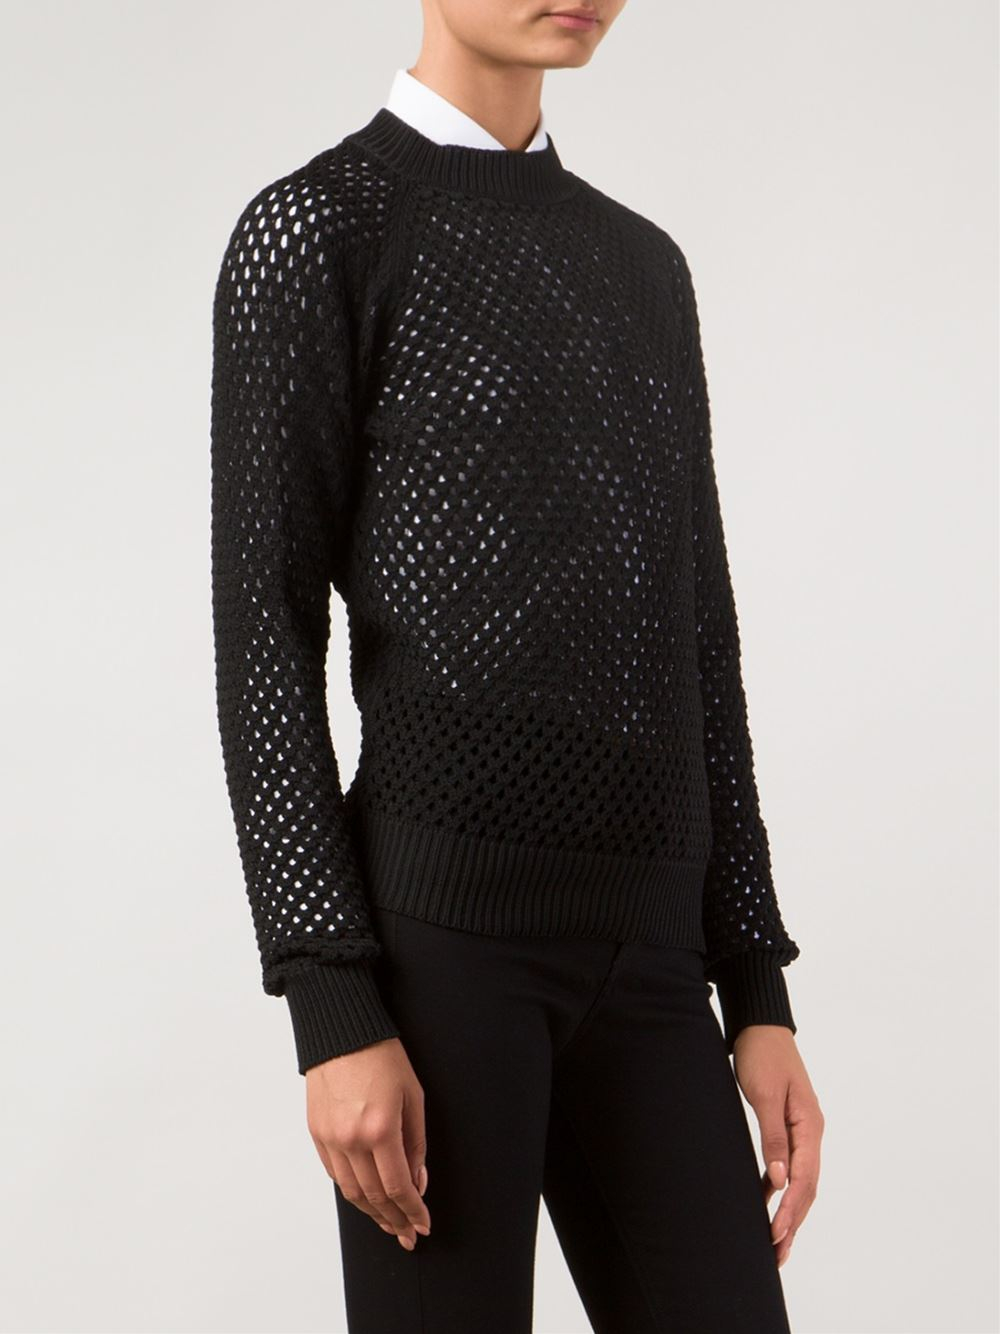 Shop for and buy open knit sweater online at Macy's. Find open knit sweater at Macy's.